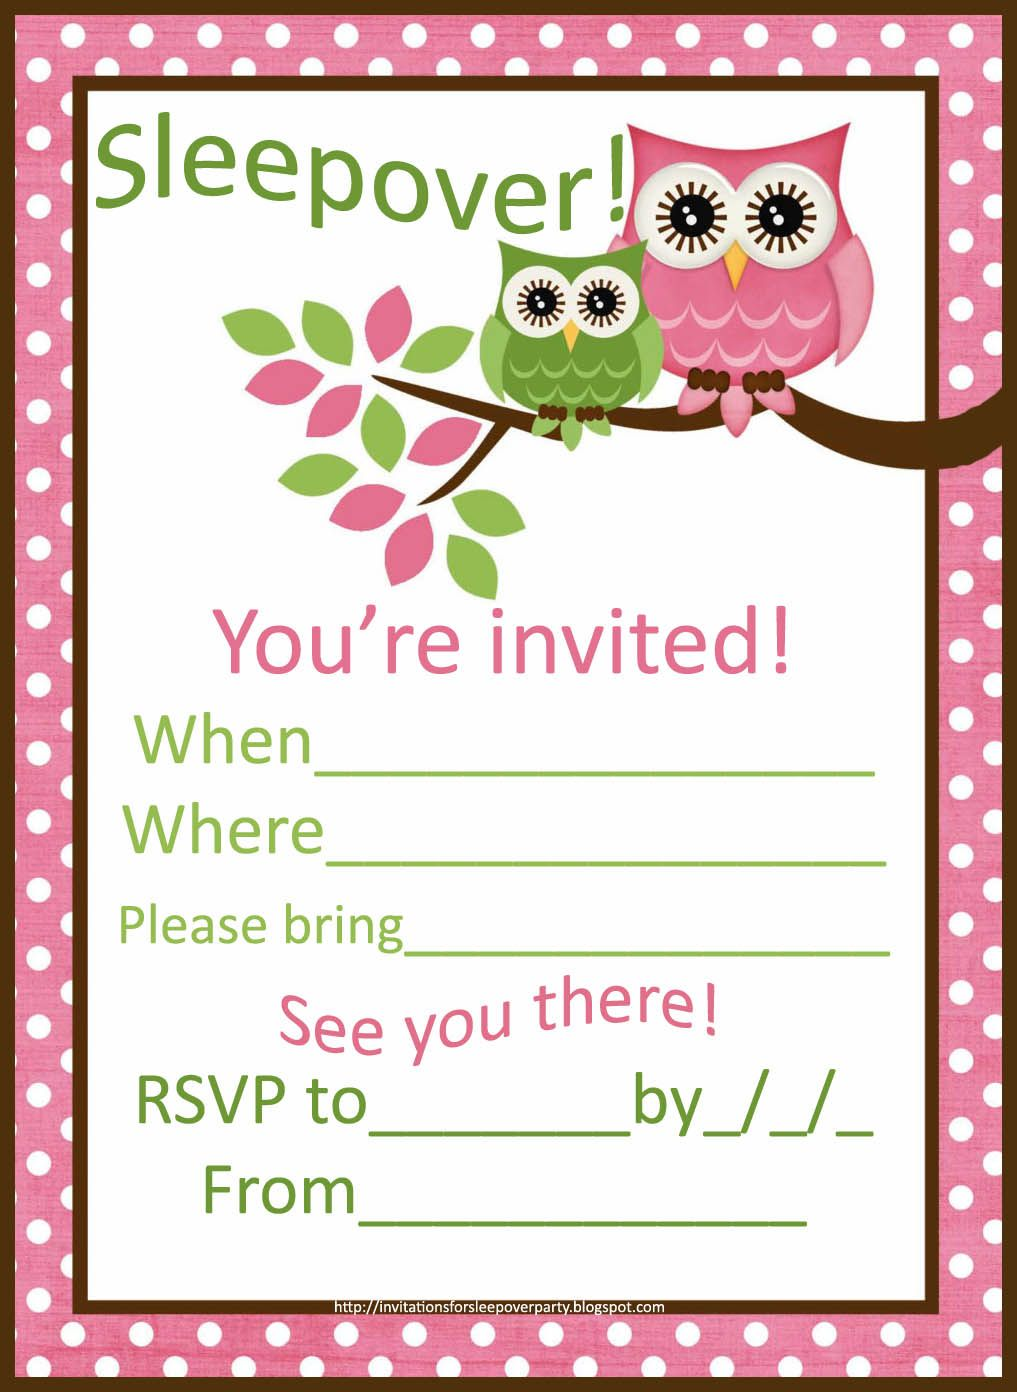 FREE INVITATIONS FOR SLEEPOVER PARTIES - This one is pink and ...